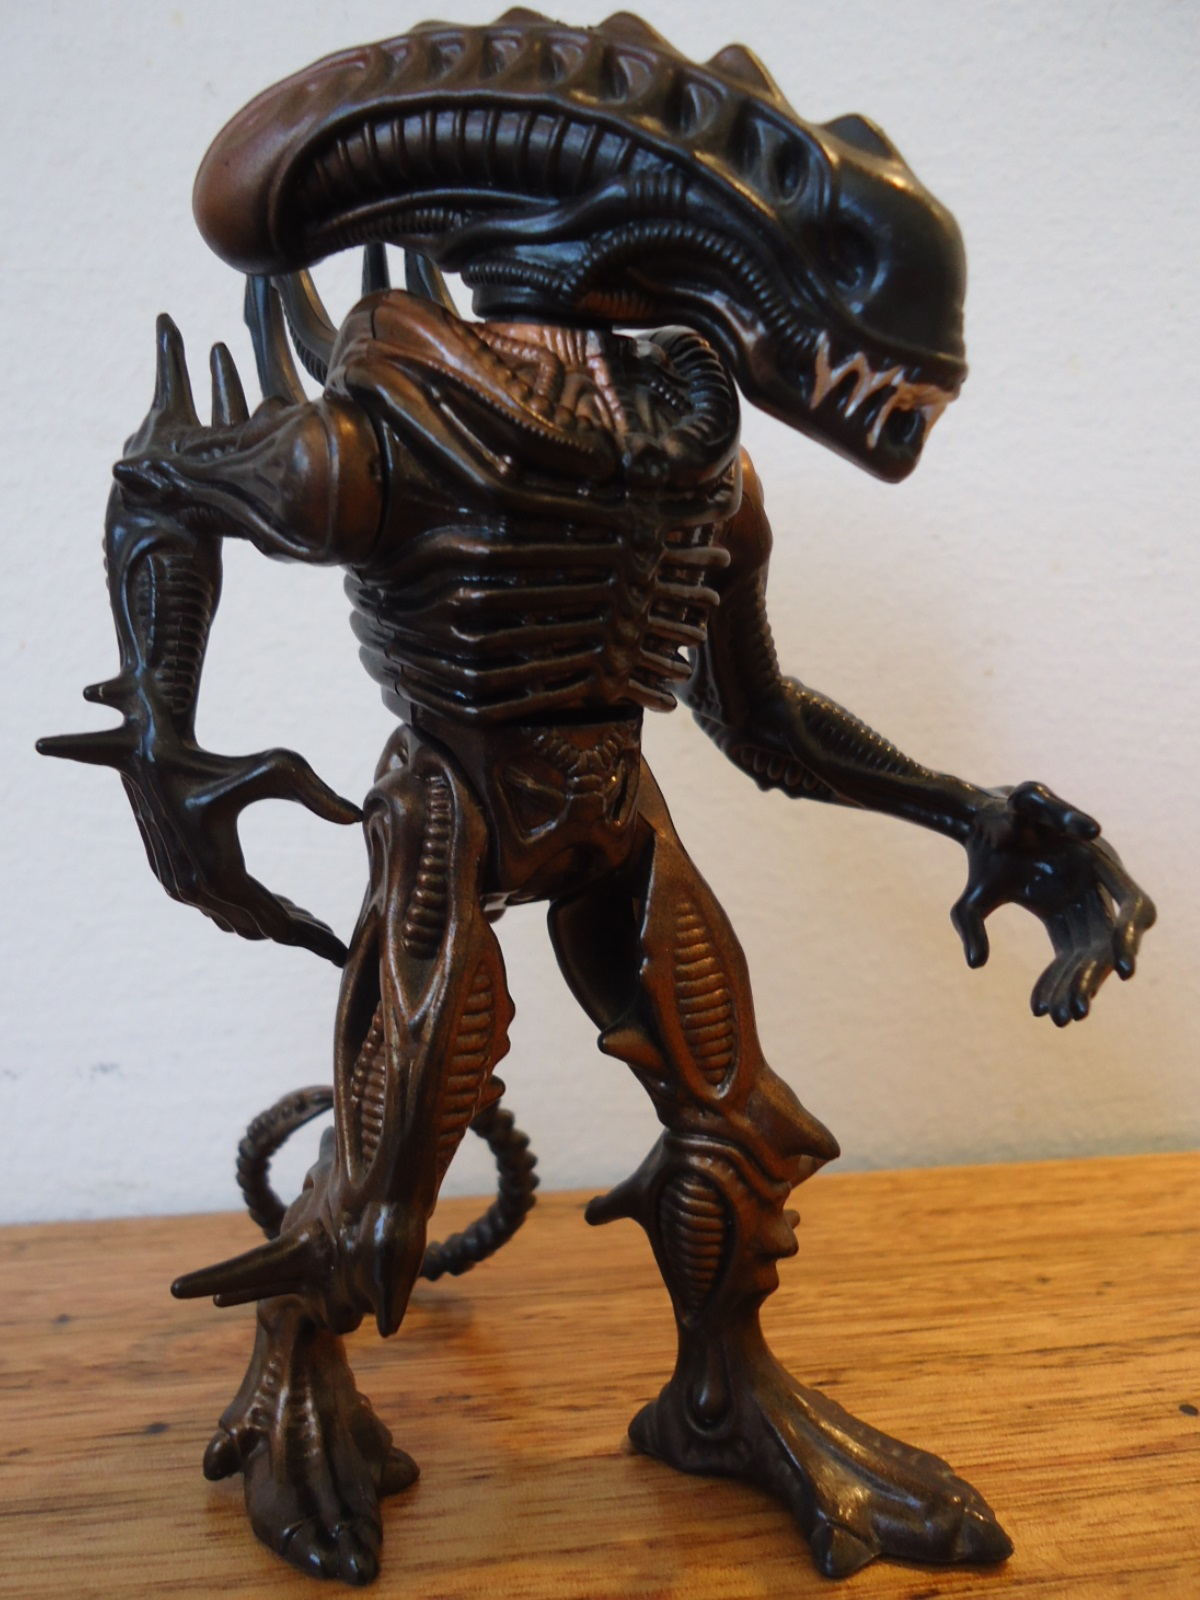 Review: 1992 Kenner Scorpion Alien | HIDEOUS PLASTIC